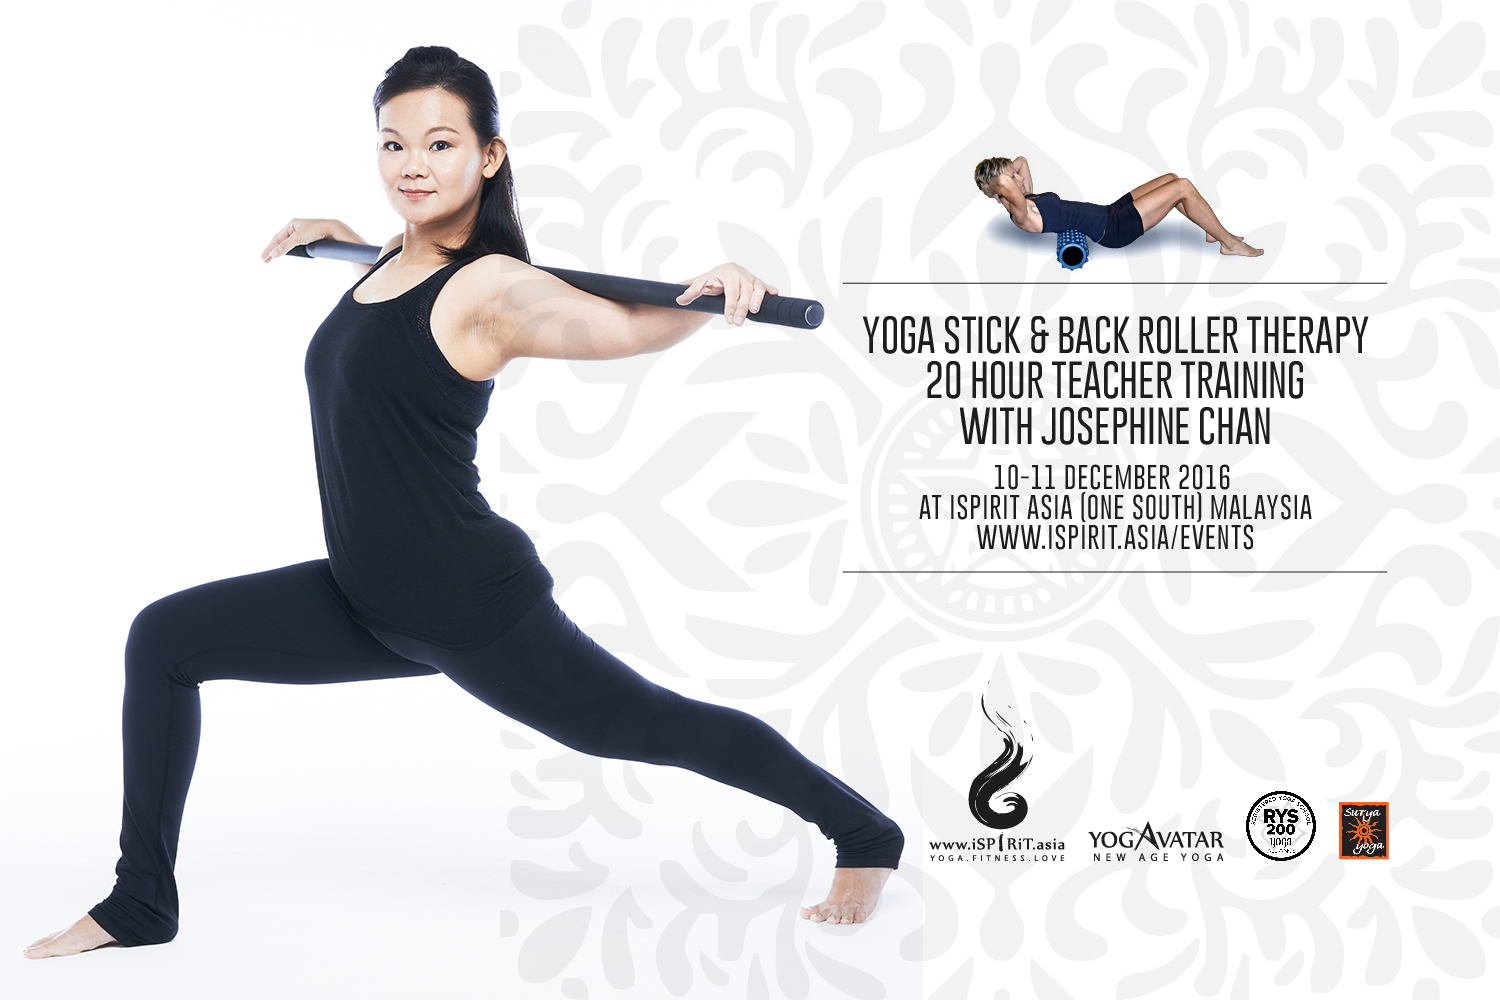 Yoga Stick & Back Roller Therapy 20 Hour Teacher Training With Josephine Chan